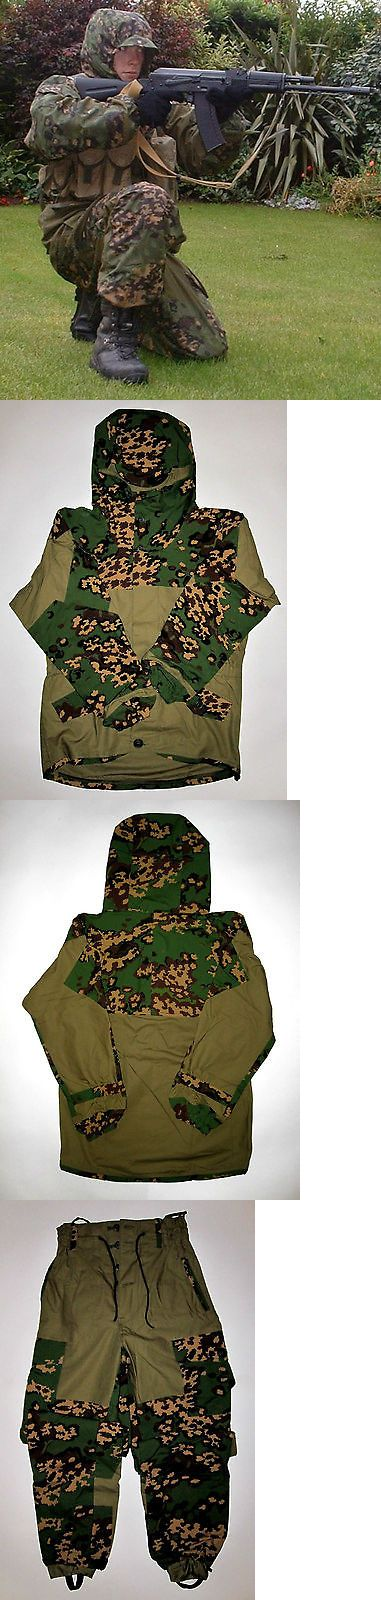 Jacket and Pants Sets 179981: Size 54/6 Gorka E Sposn Sso Original Camo Suit Russian Special Uniform Hunting BUY IT NOW ONLY: $76.0